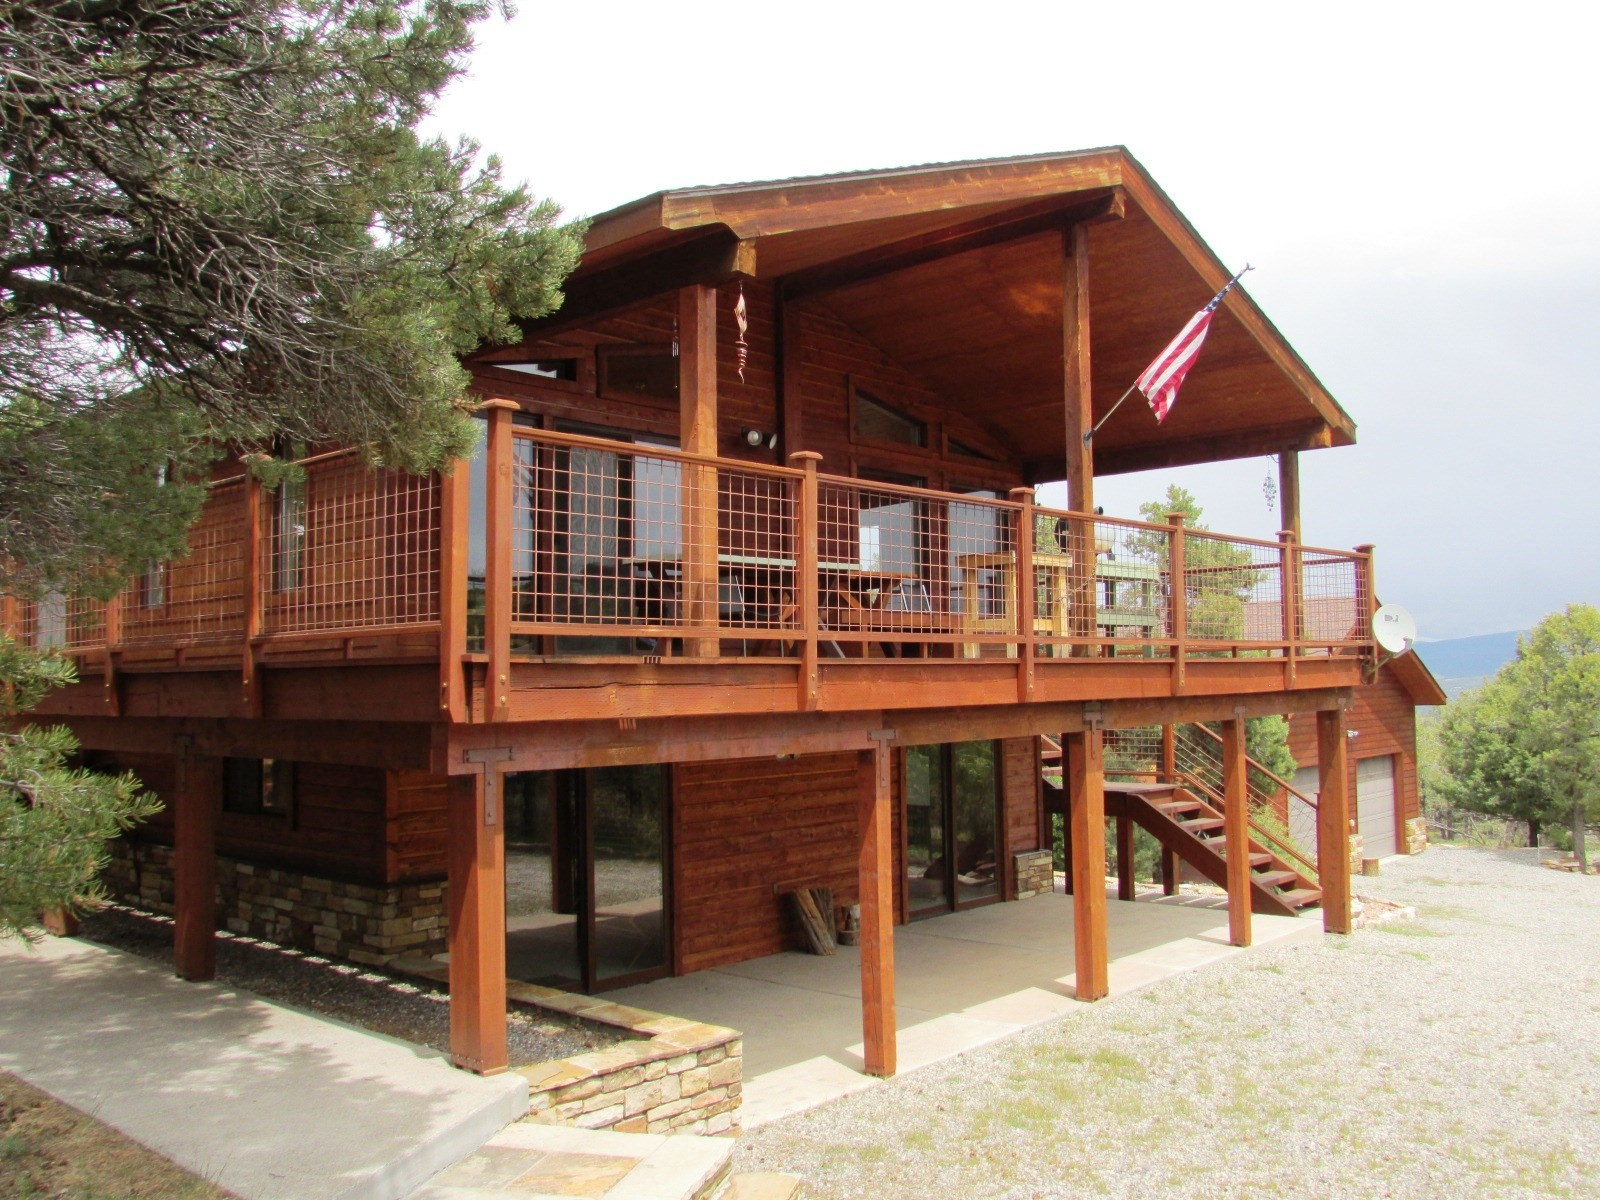 Mountain Recreational Property For Sale Ridgway Colorado